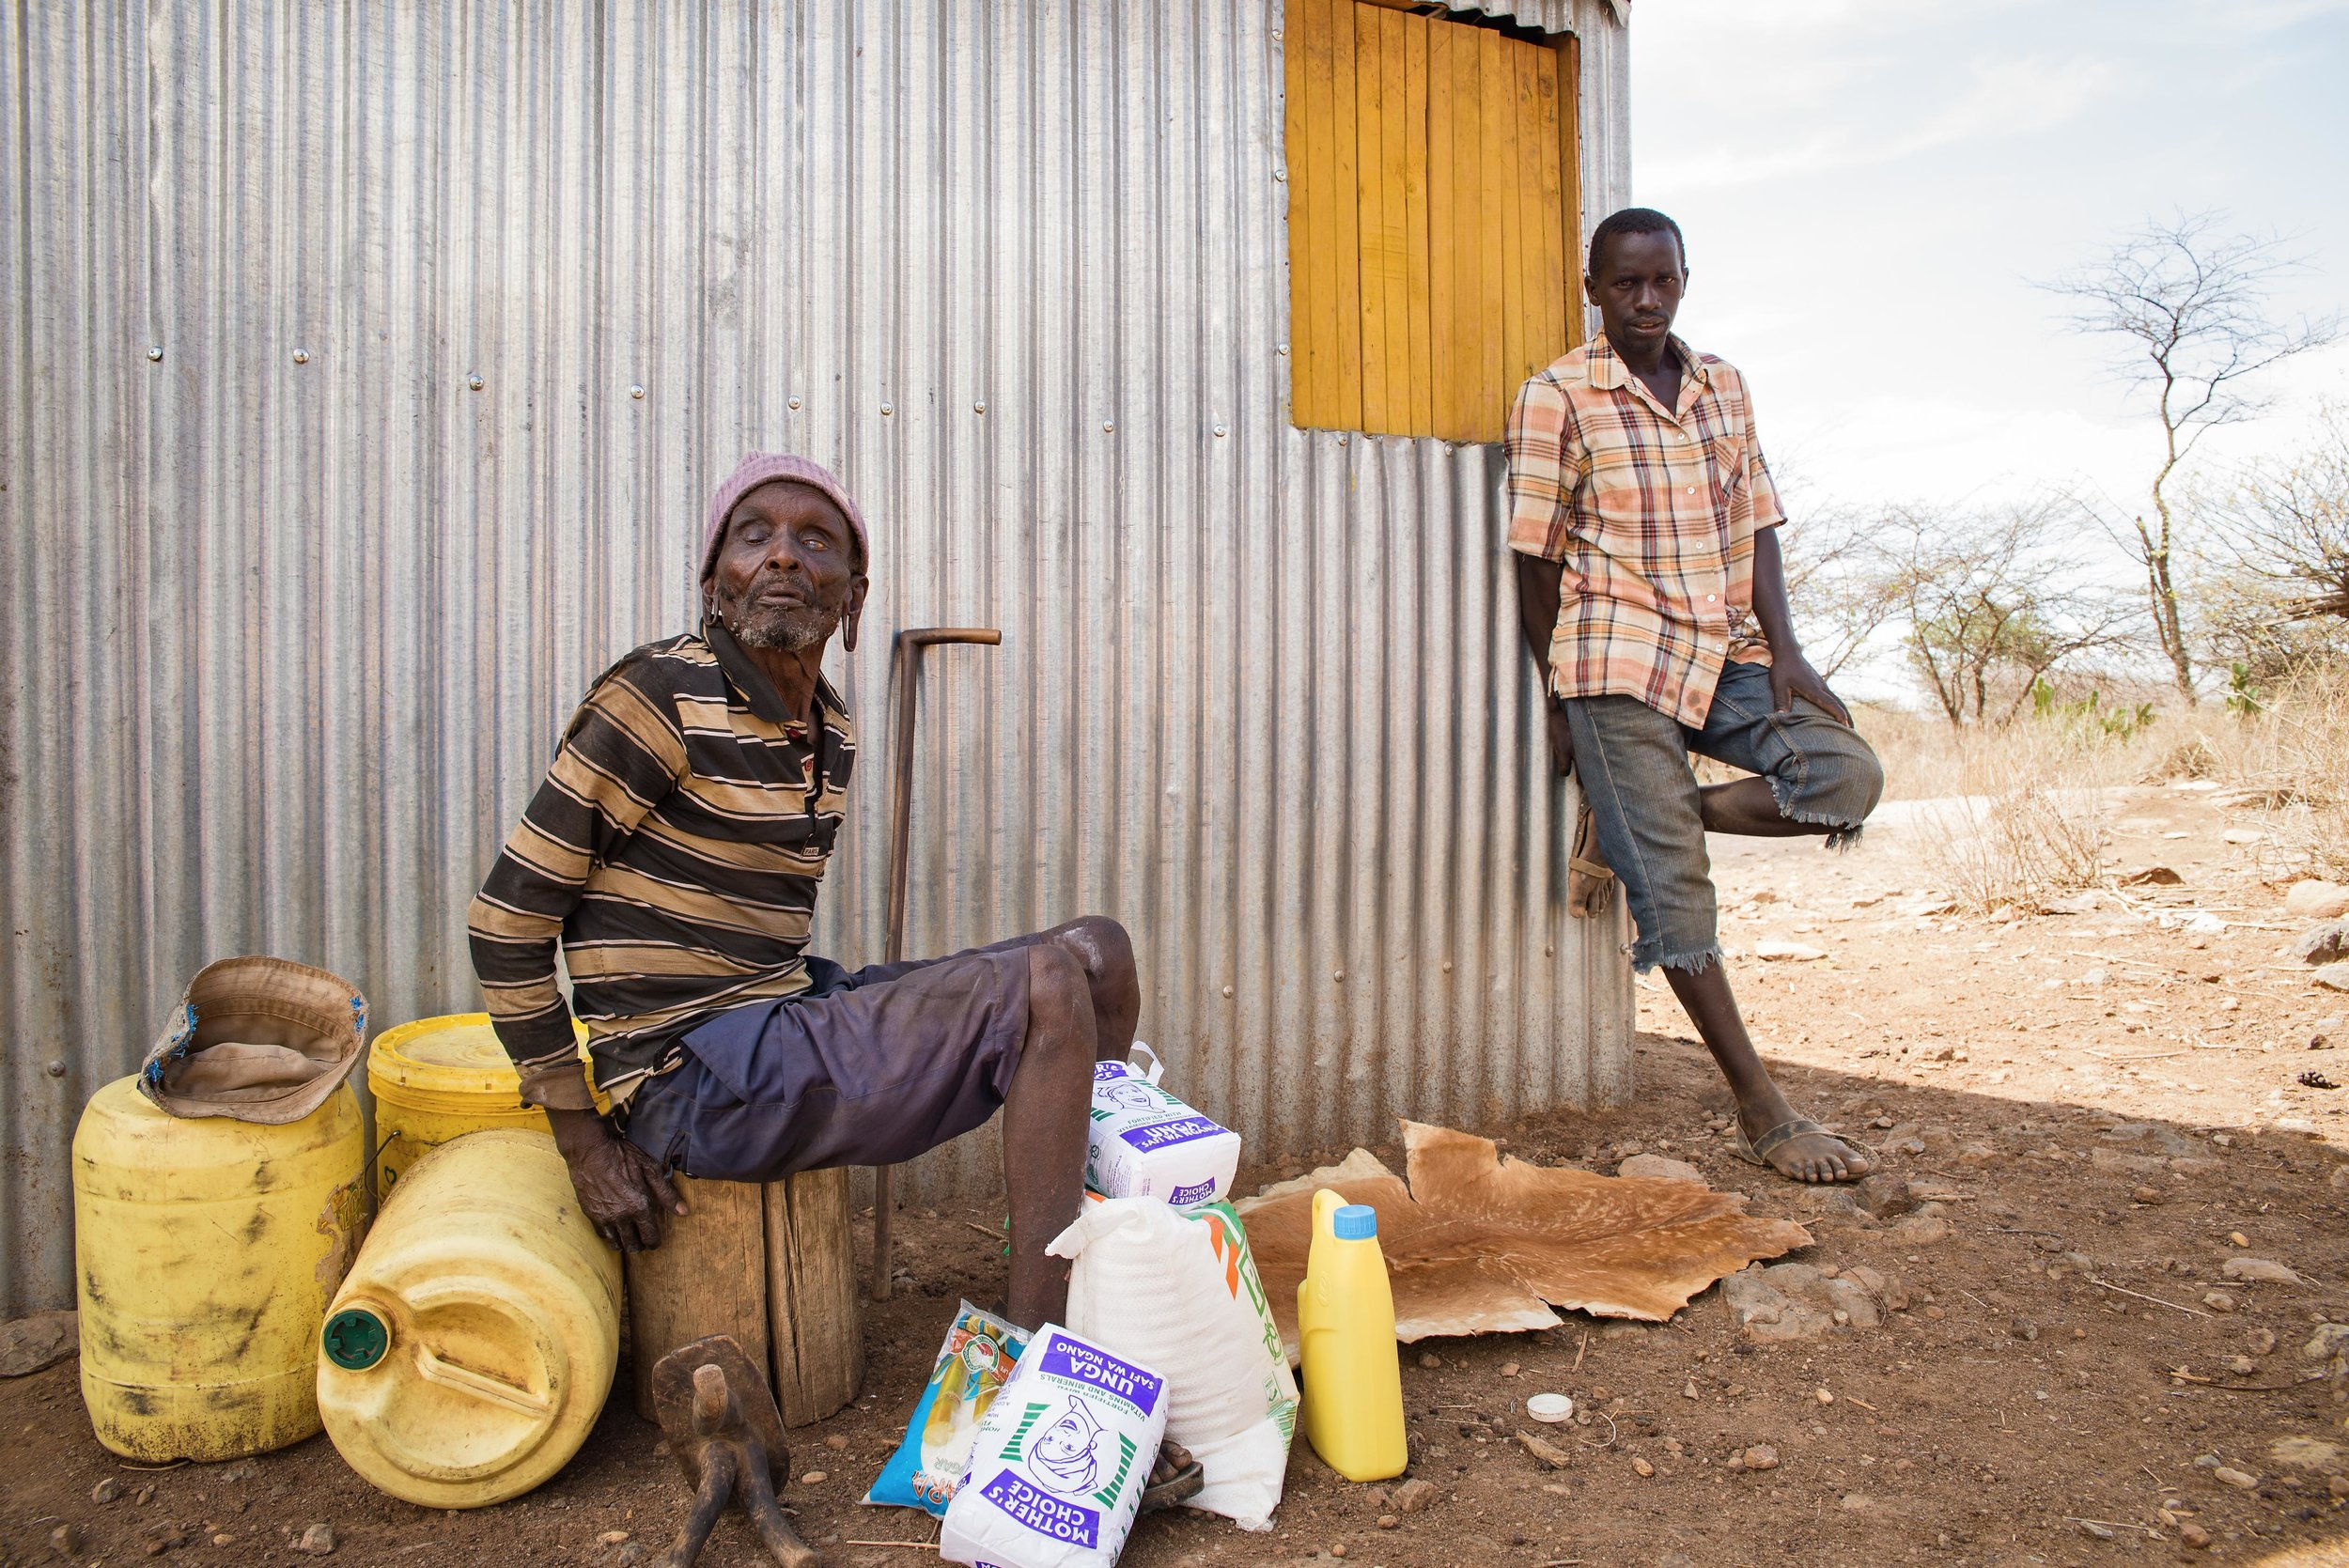 """Cherutich Kigen and his son sit outside his home in Baringo County, Kenya. """"There is a lack of water and lack of food. I'm unable to meet my basic needs,"""" he said."""